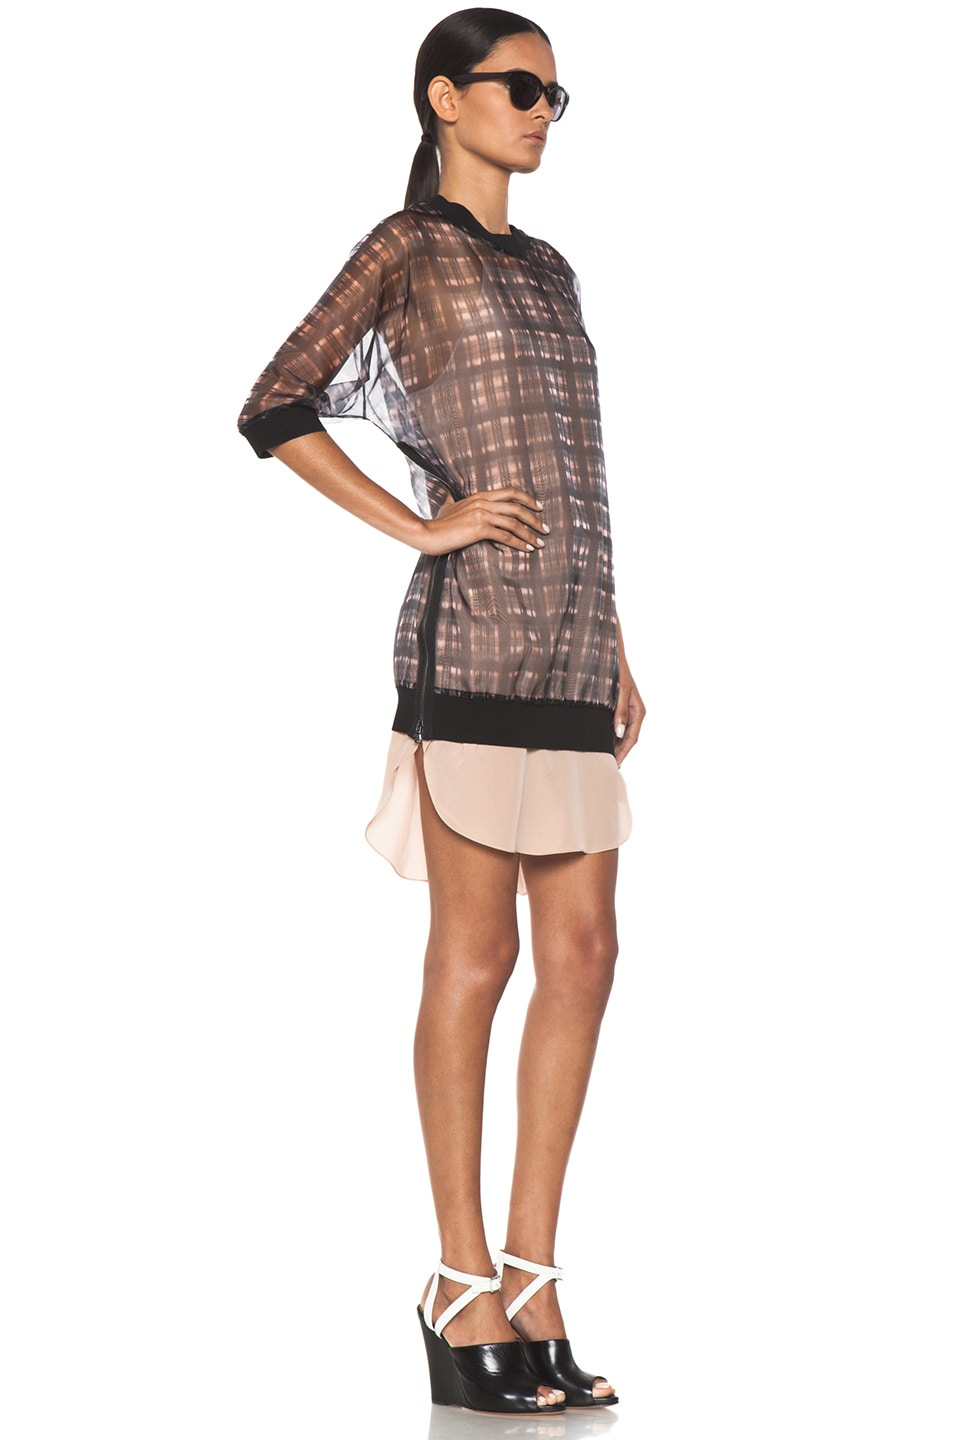 Image 3 of 3.1 phillip lim Digital Napped Plaid Combo Trompl'oeil Sweater Dress with Side Zips in Pink